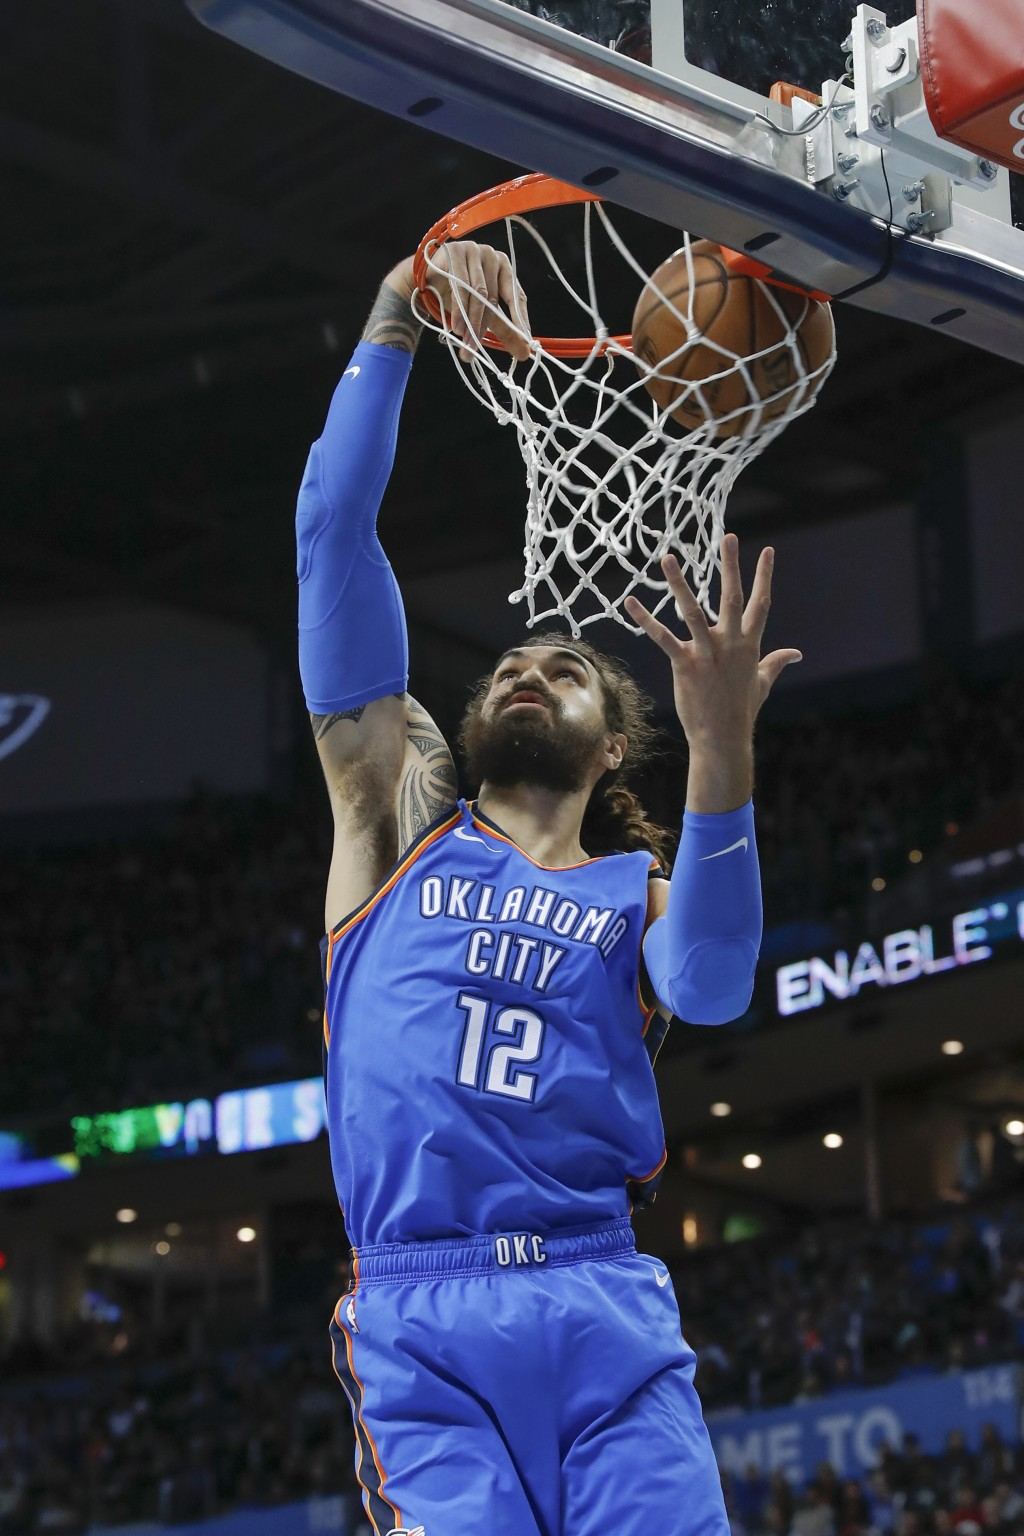 Oklahoma City Thunder center Steven Adams (12) goes up for a basket against the Houston Rockets during the first quarter of an NBA basketball game Thu